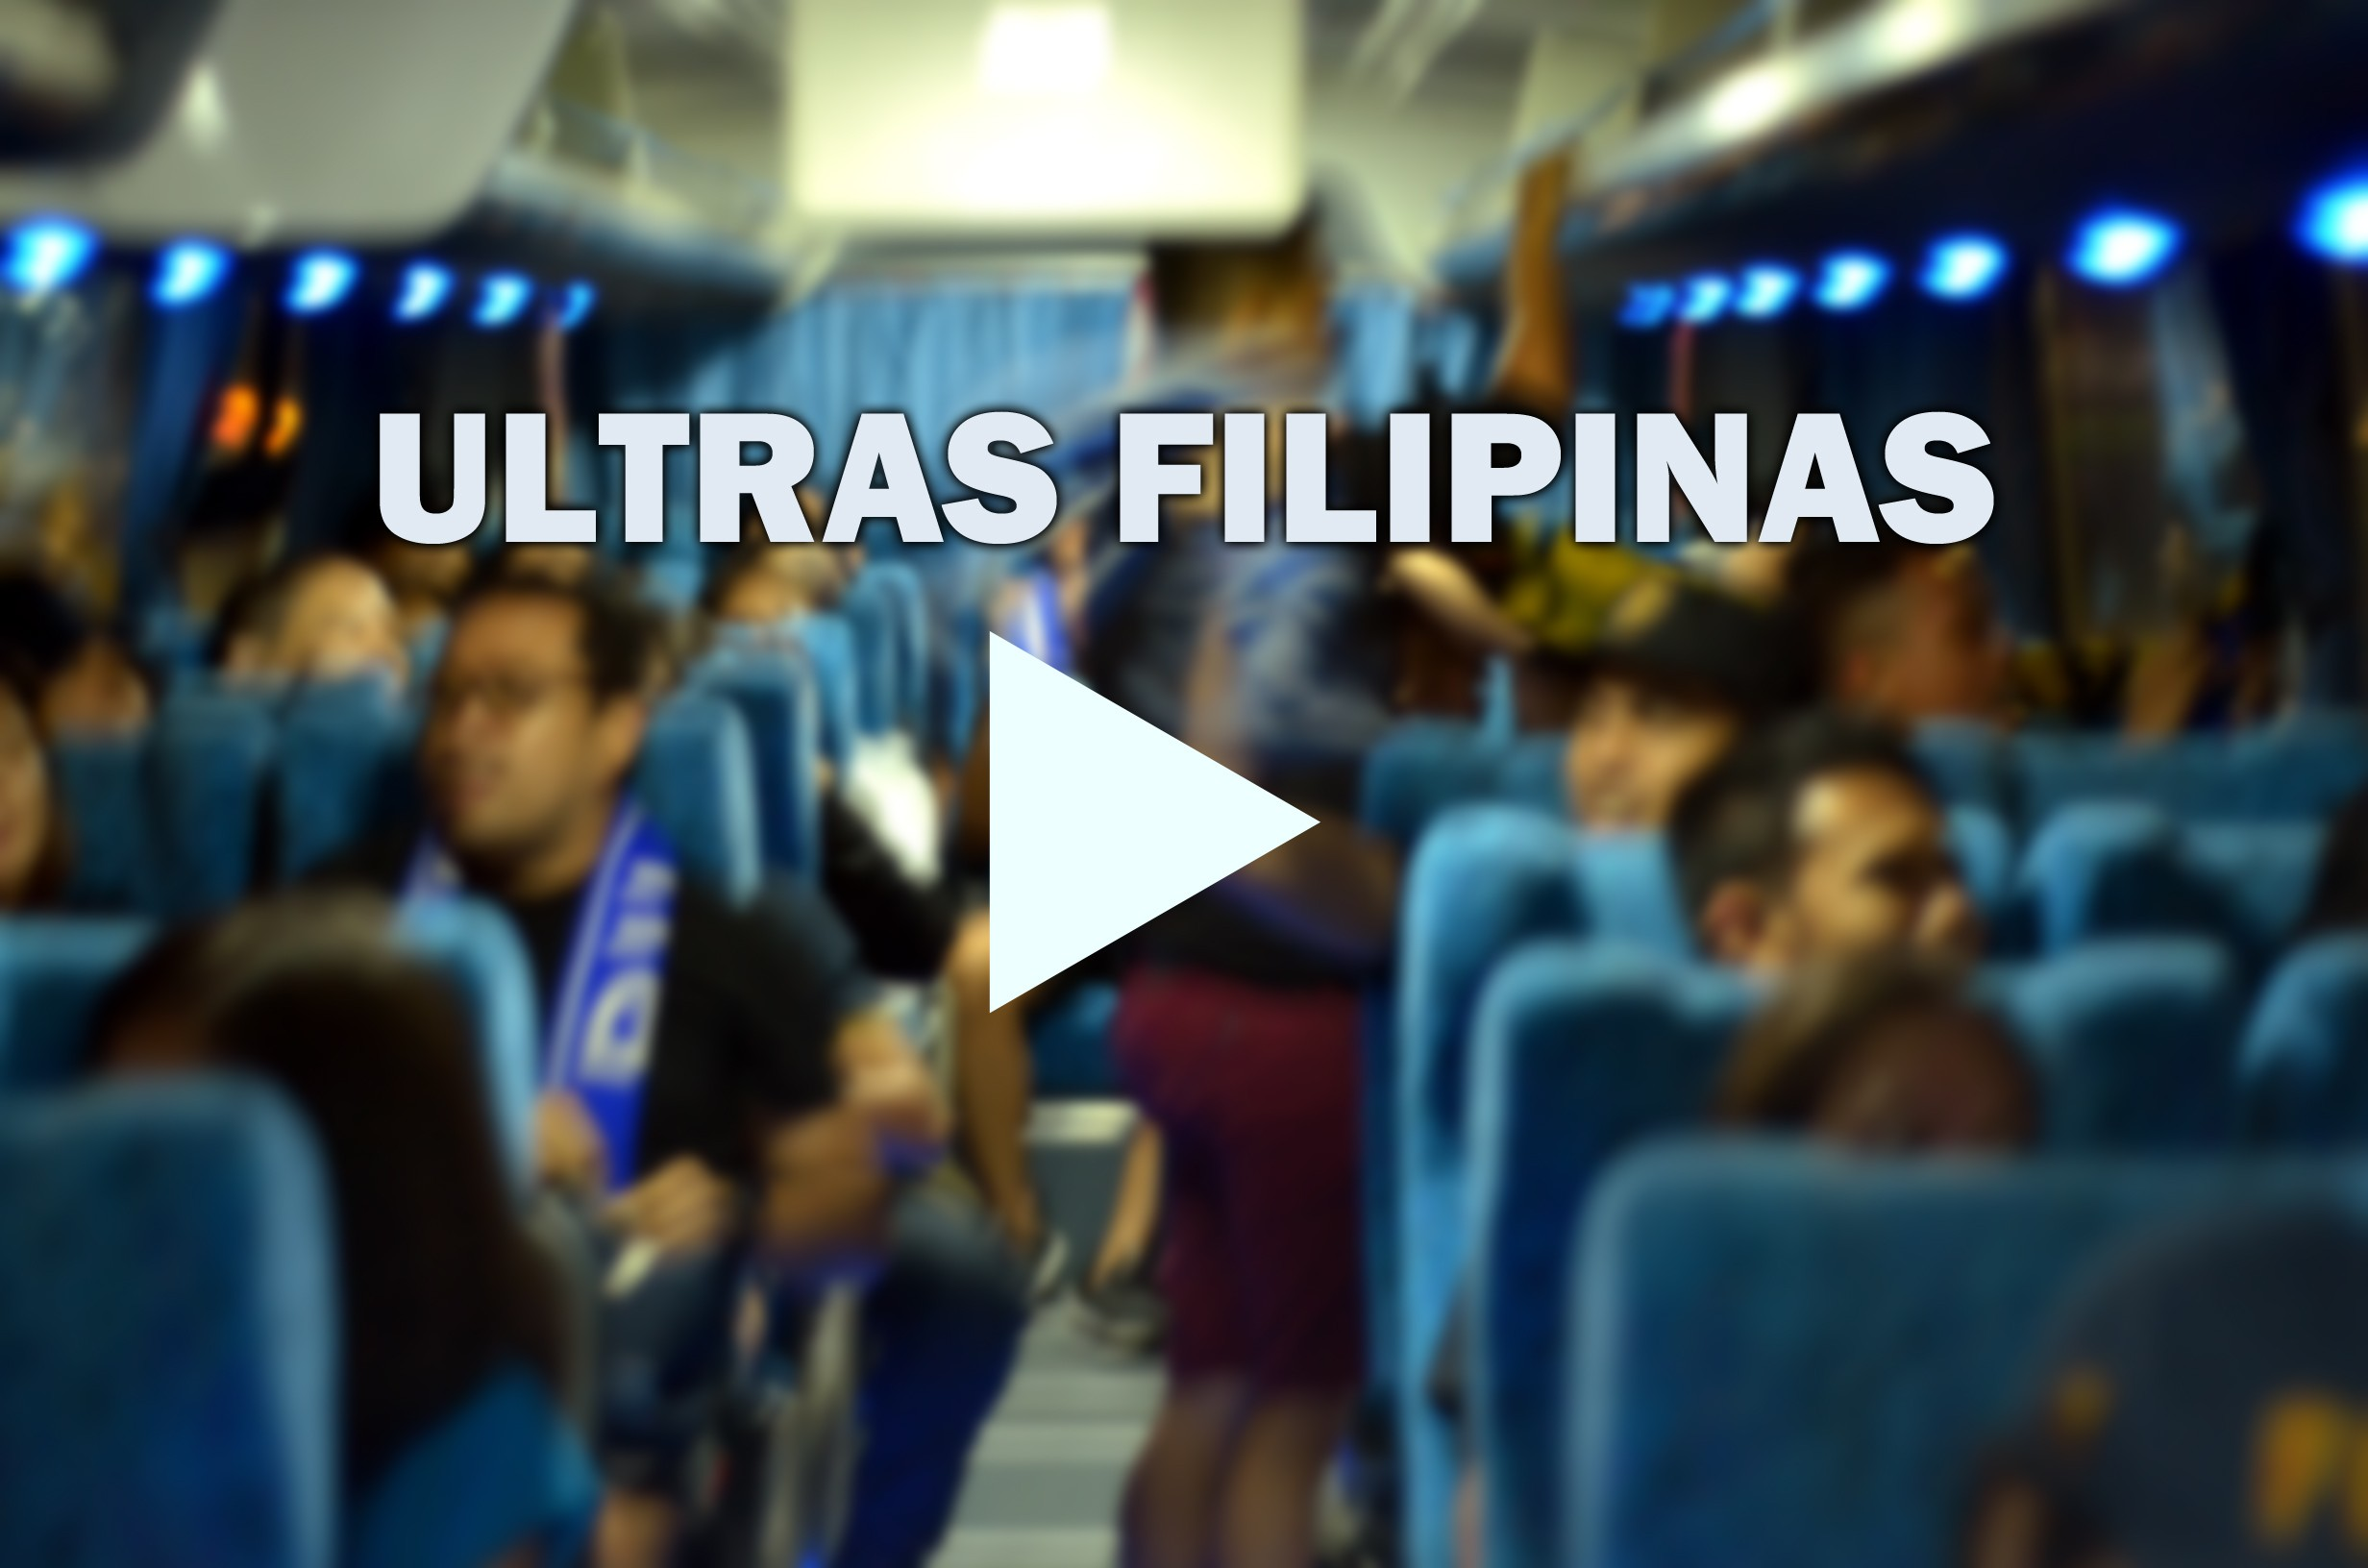 Video: Ultras Filipinas chanting inside the bus all the way to Philippine Stadium